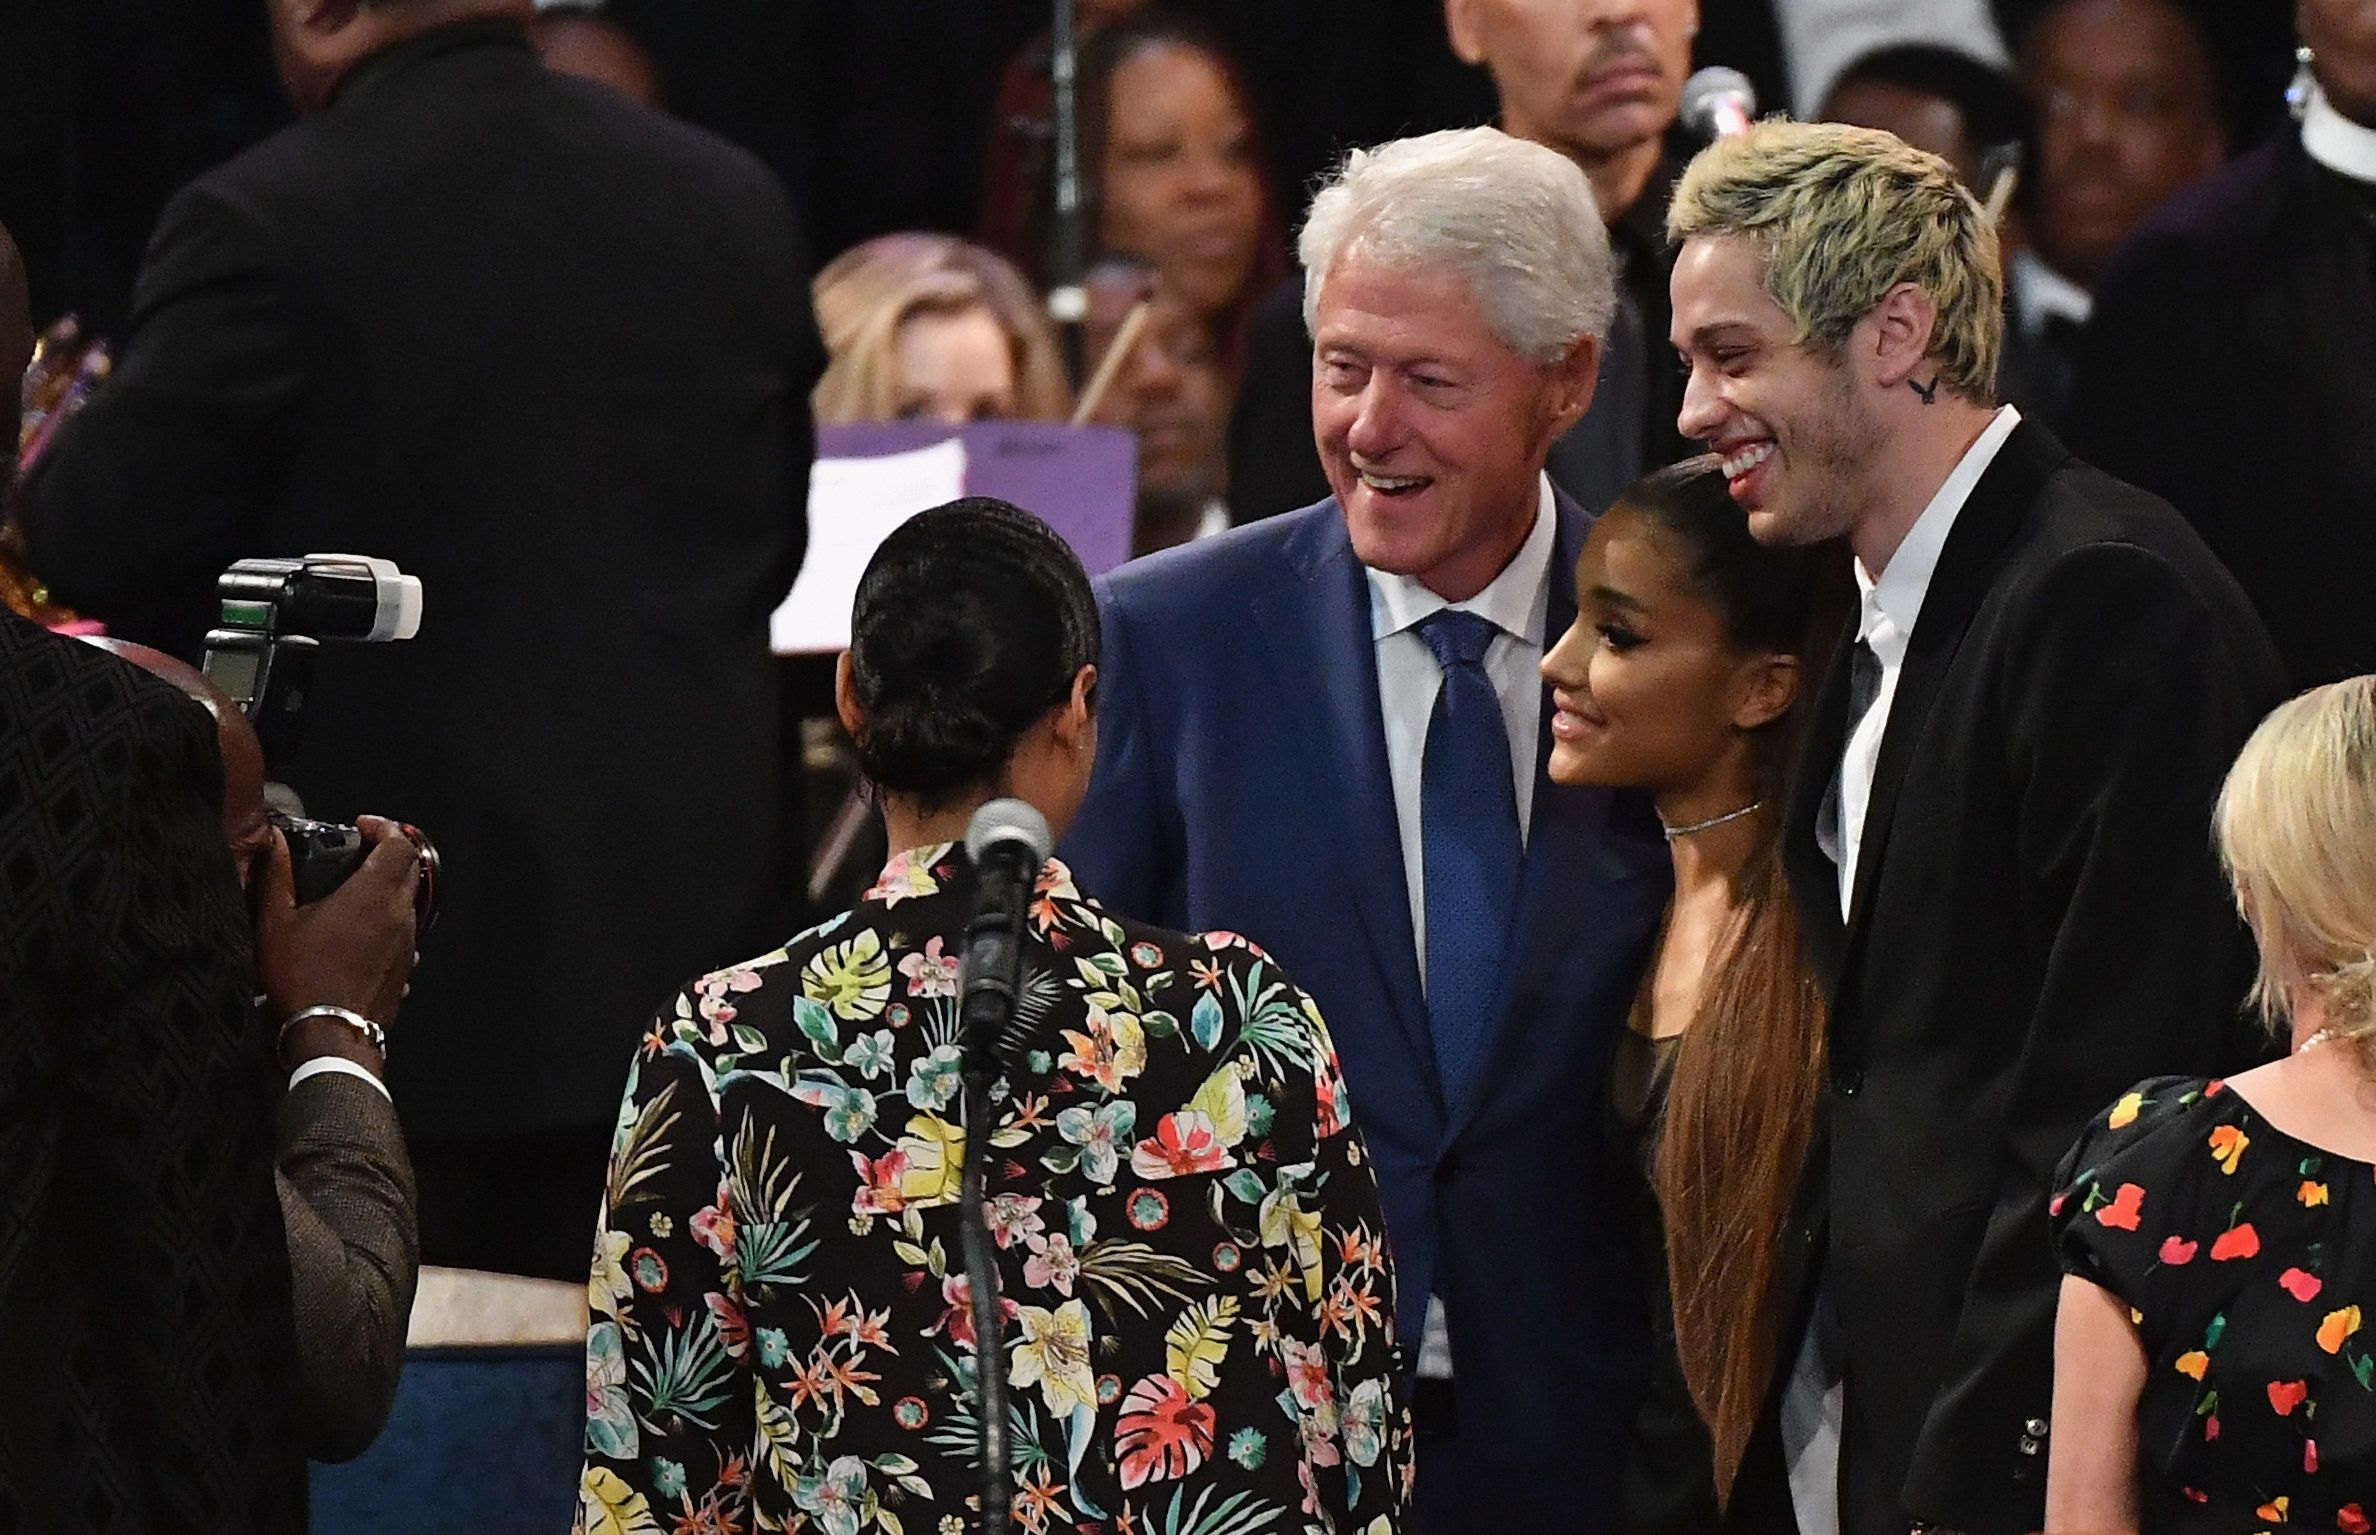 Bishop Apologises for Touching Ariana Grande Inappropriately at Aretha Franklin's Funeral